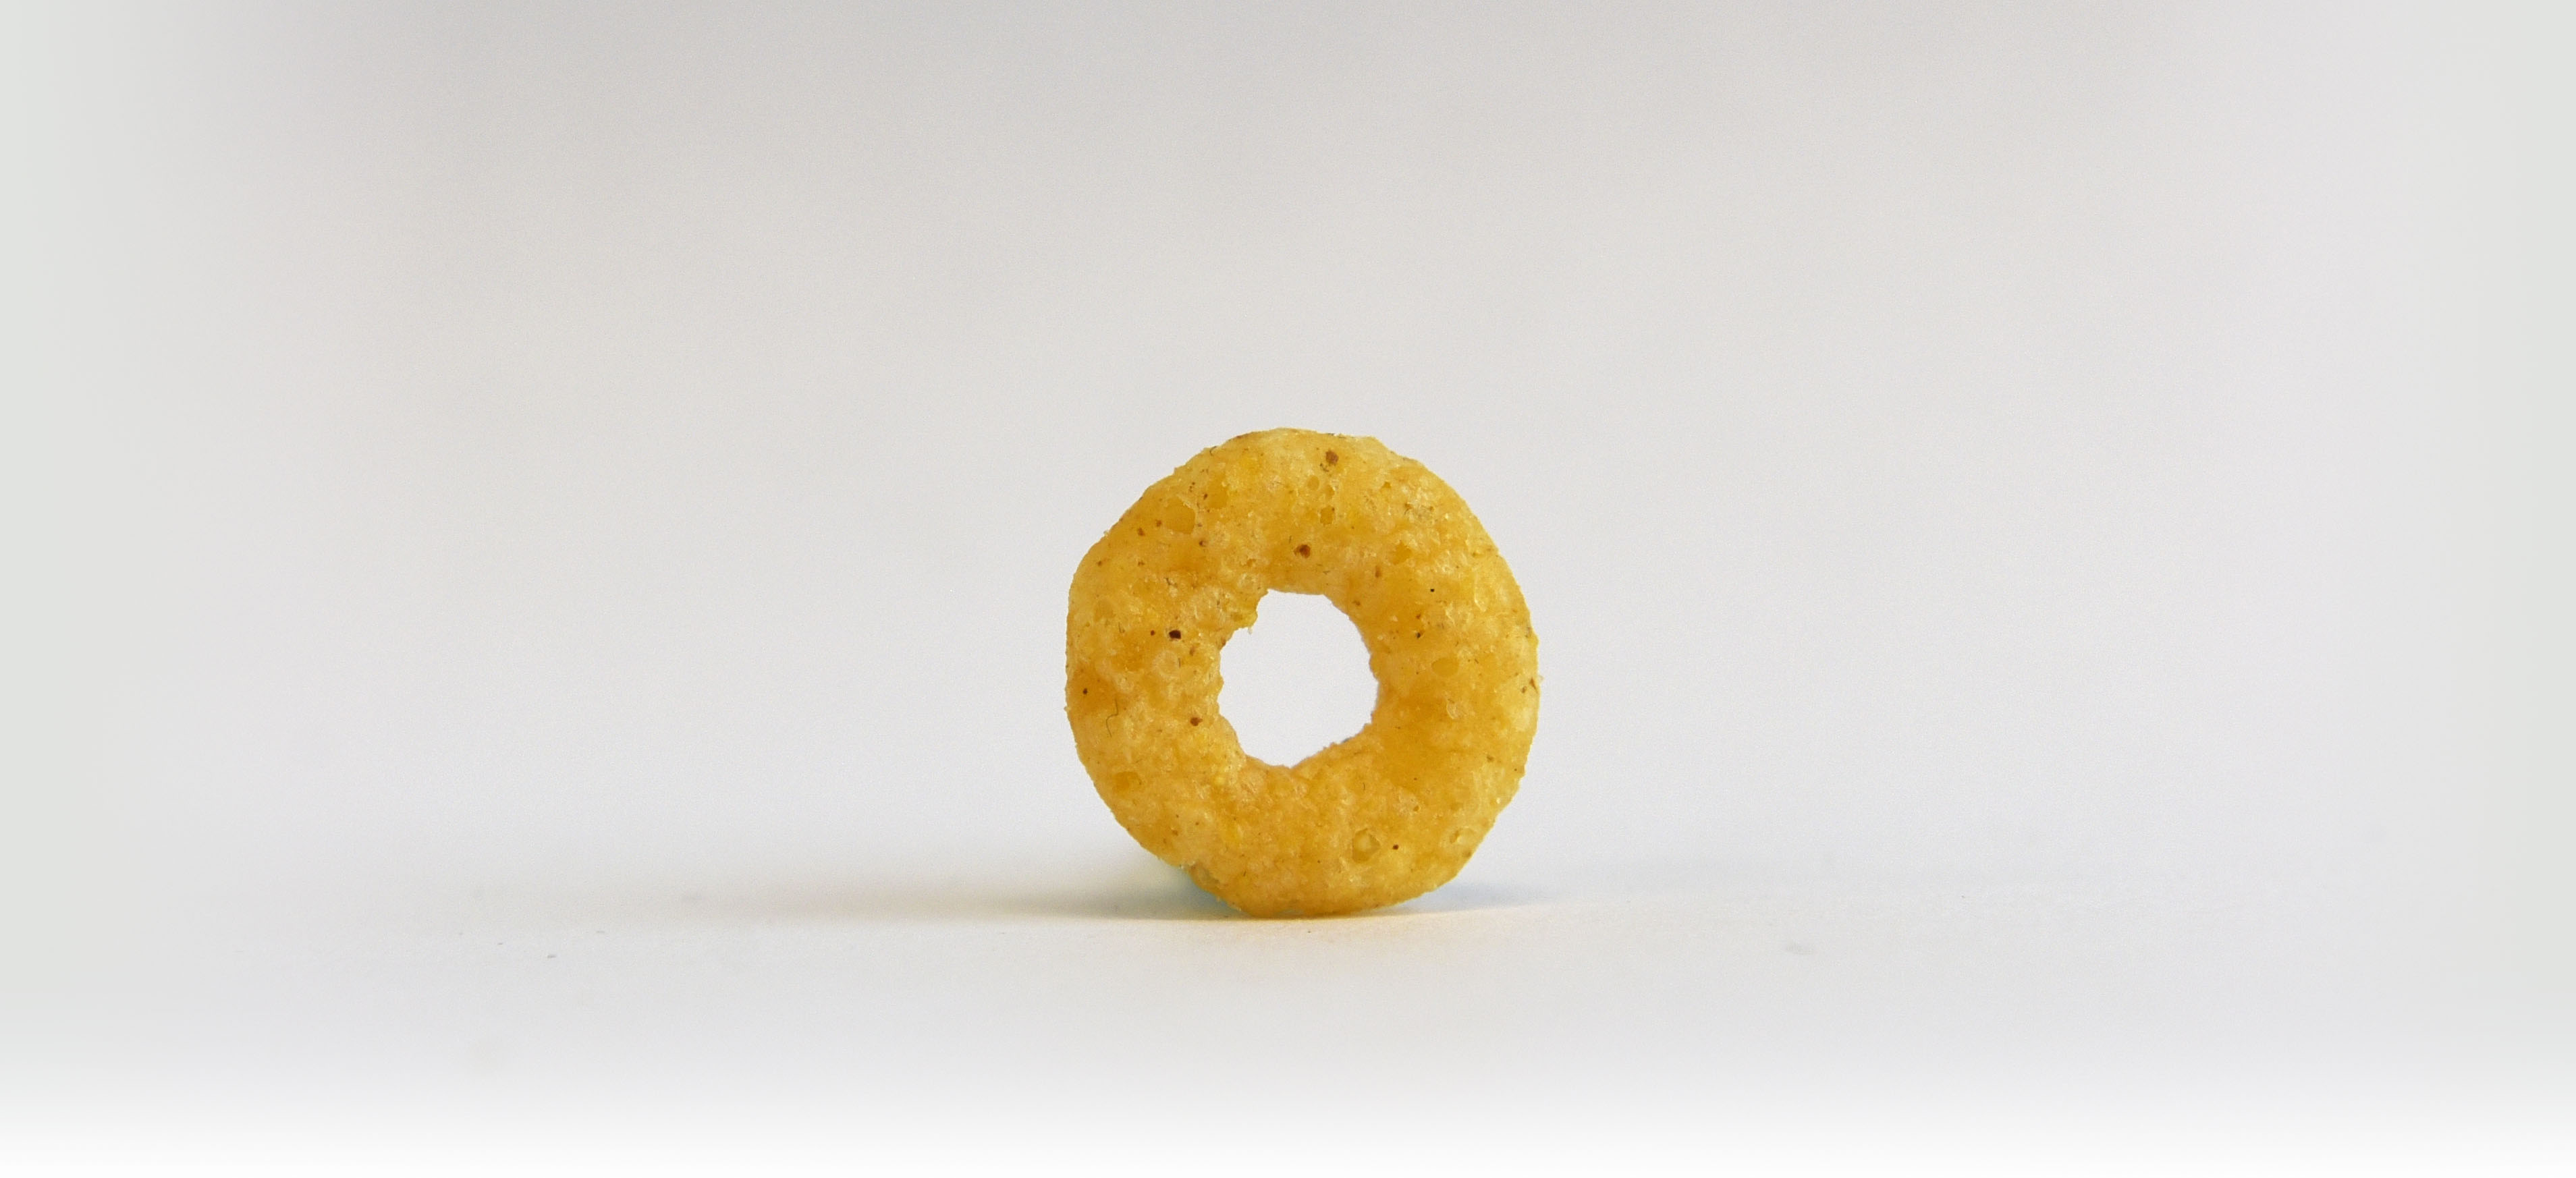 A still life photograph of a toasted O from a package of snack food. (Fred Lum/The Globe and Mail)